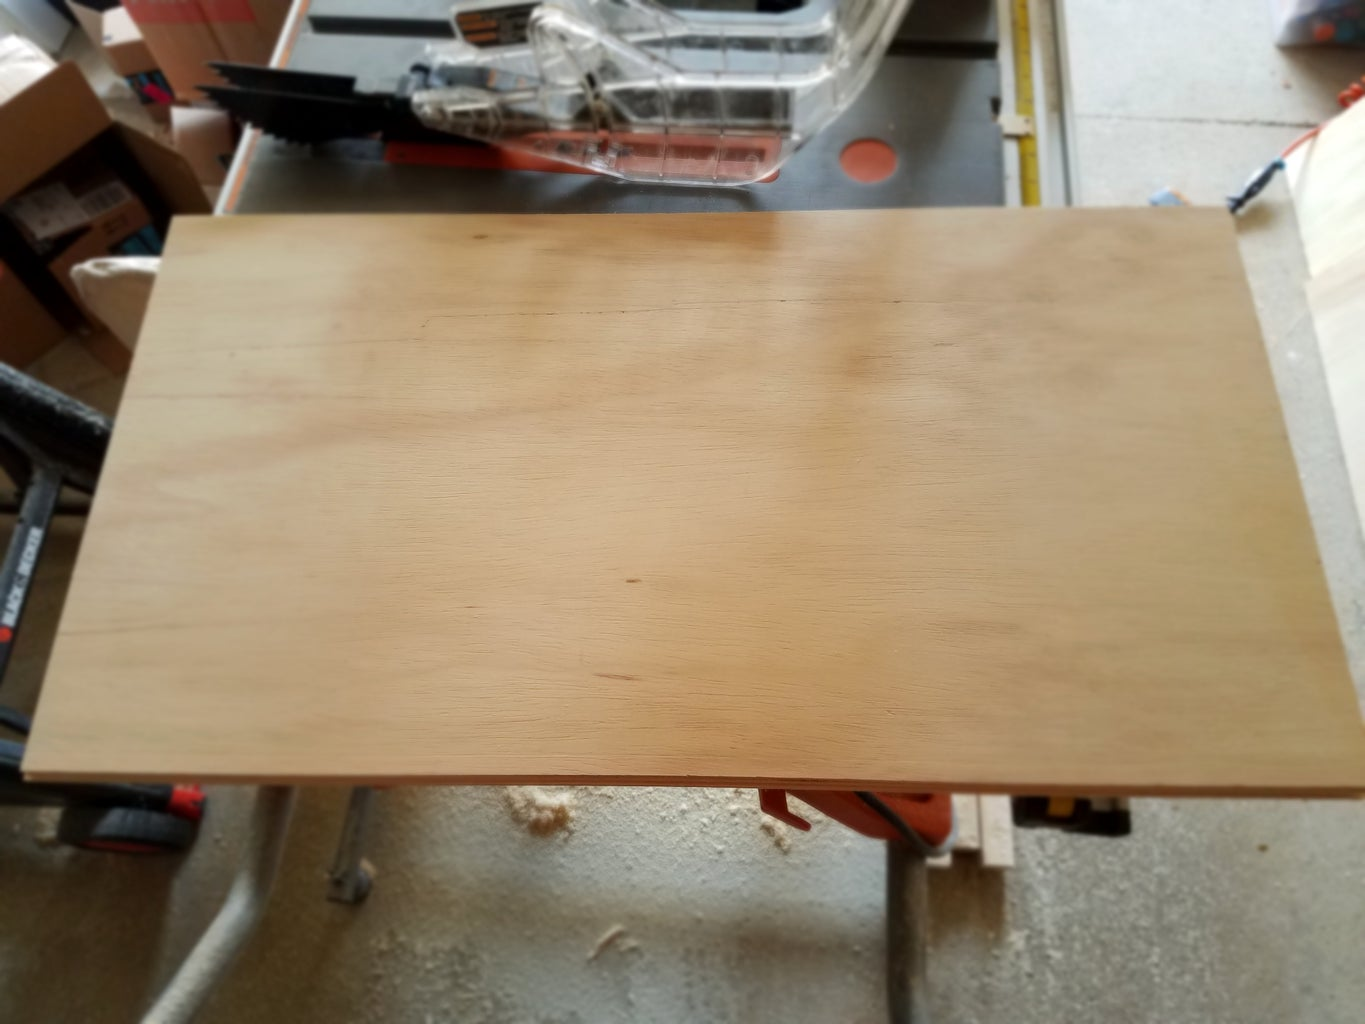 Cut Plywood for Outer Box